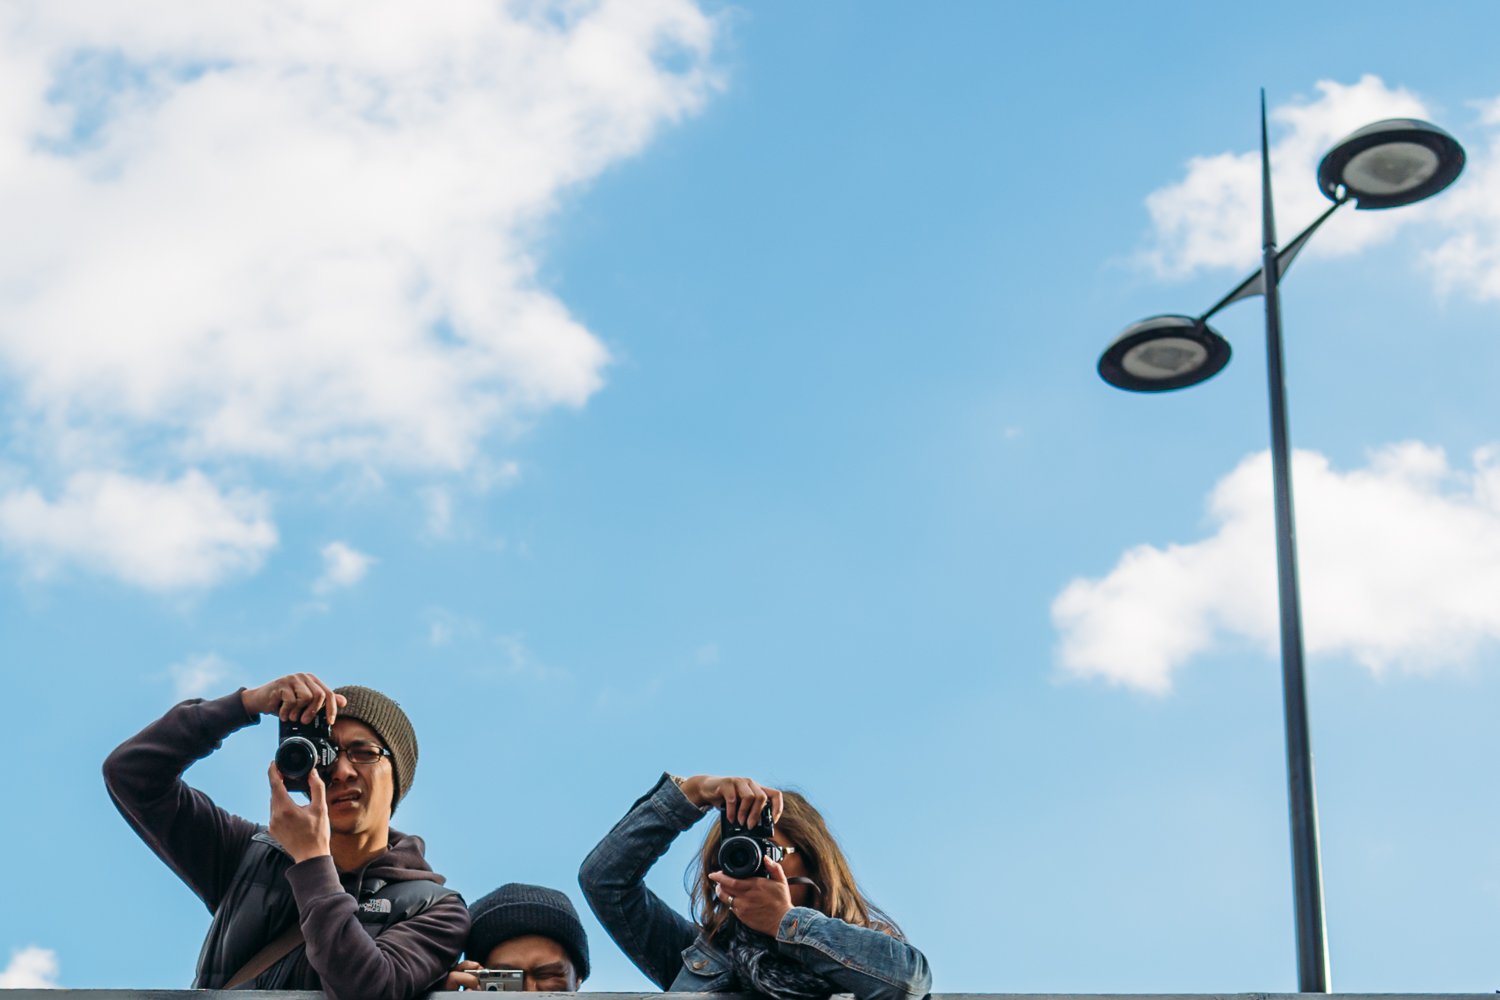 Olivier Glod Using the Sony RX1R for Street Photography